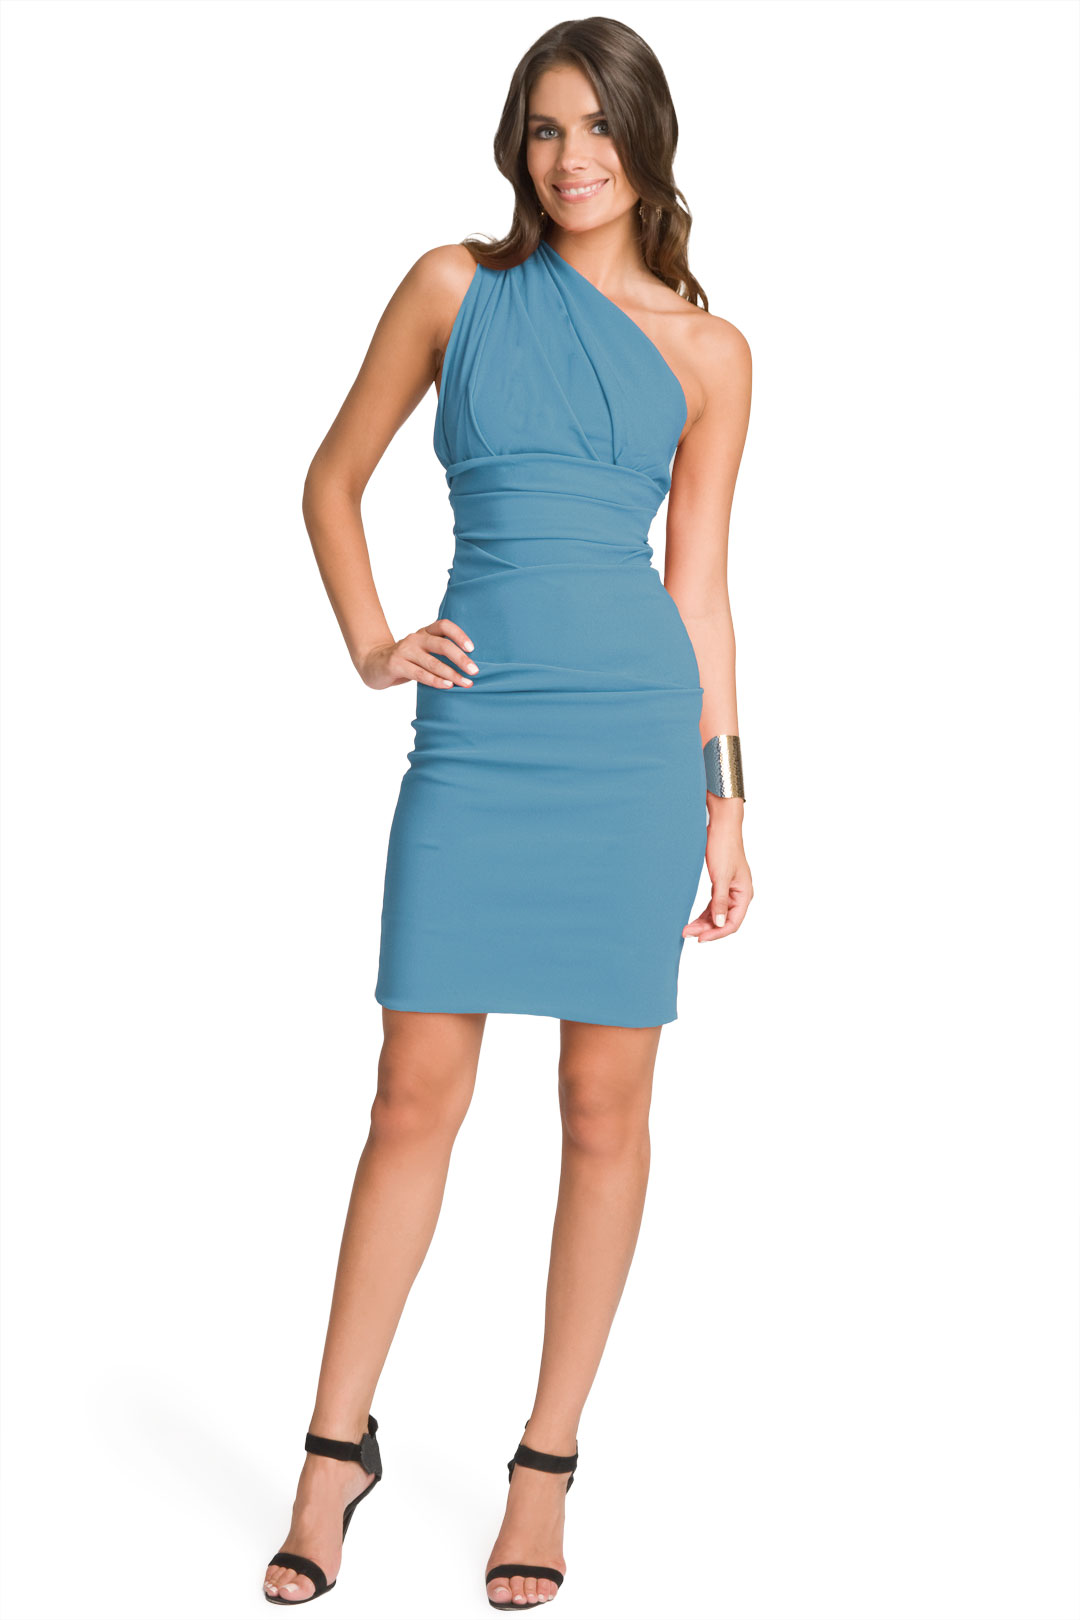 Beverly Hills Mansion Dress by Preen at $200   Rent The Runway